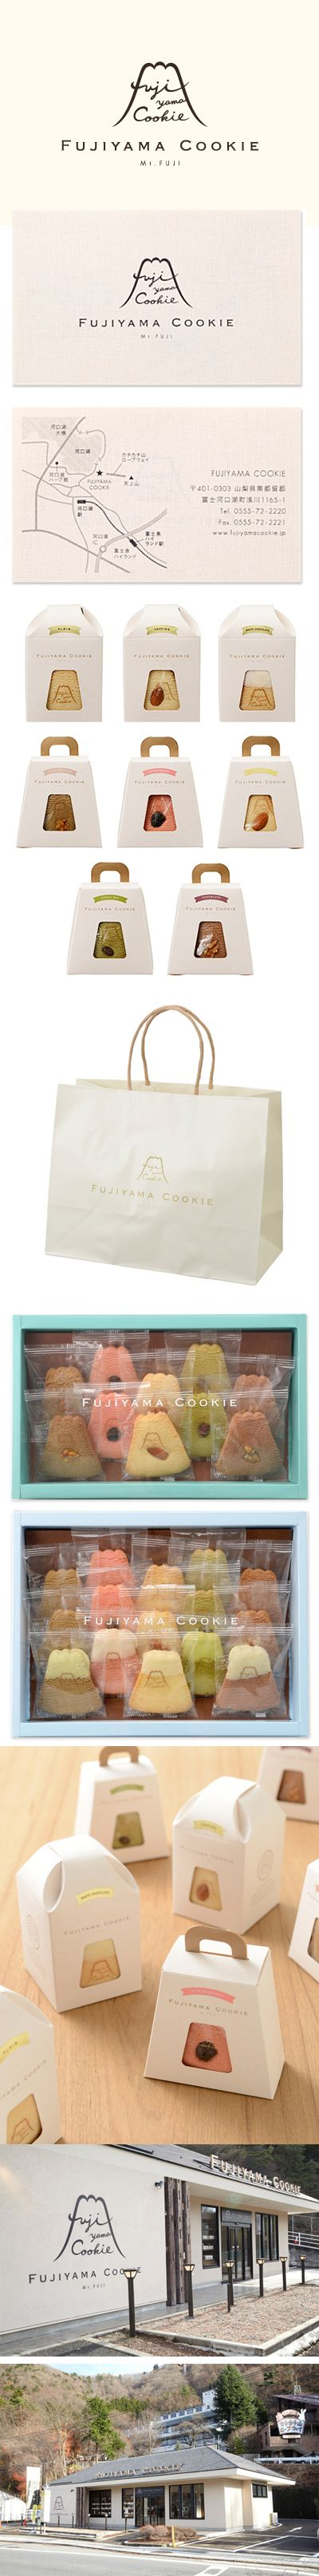 Woo Hoo here's the whole Fujiyama cookie #identity #packaging #branding story PD